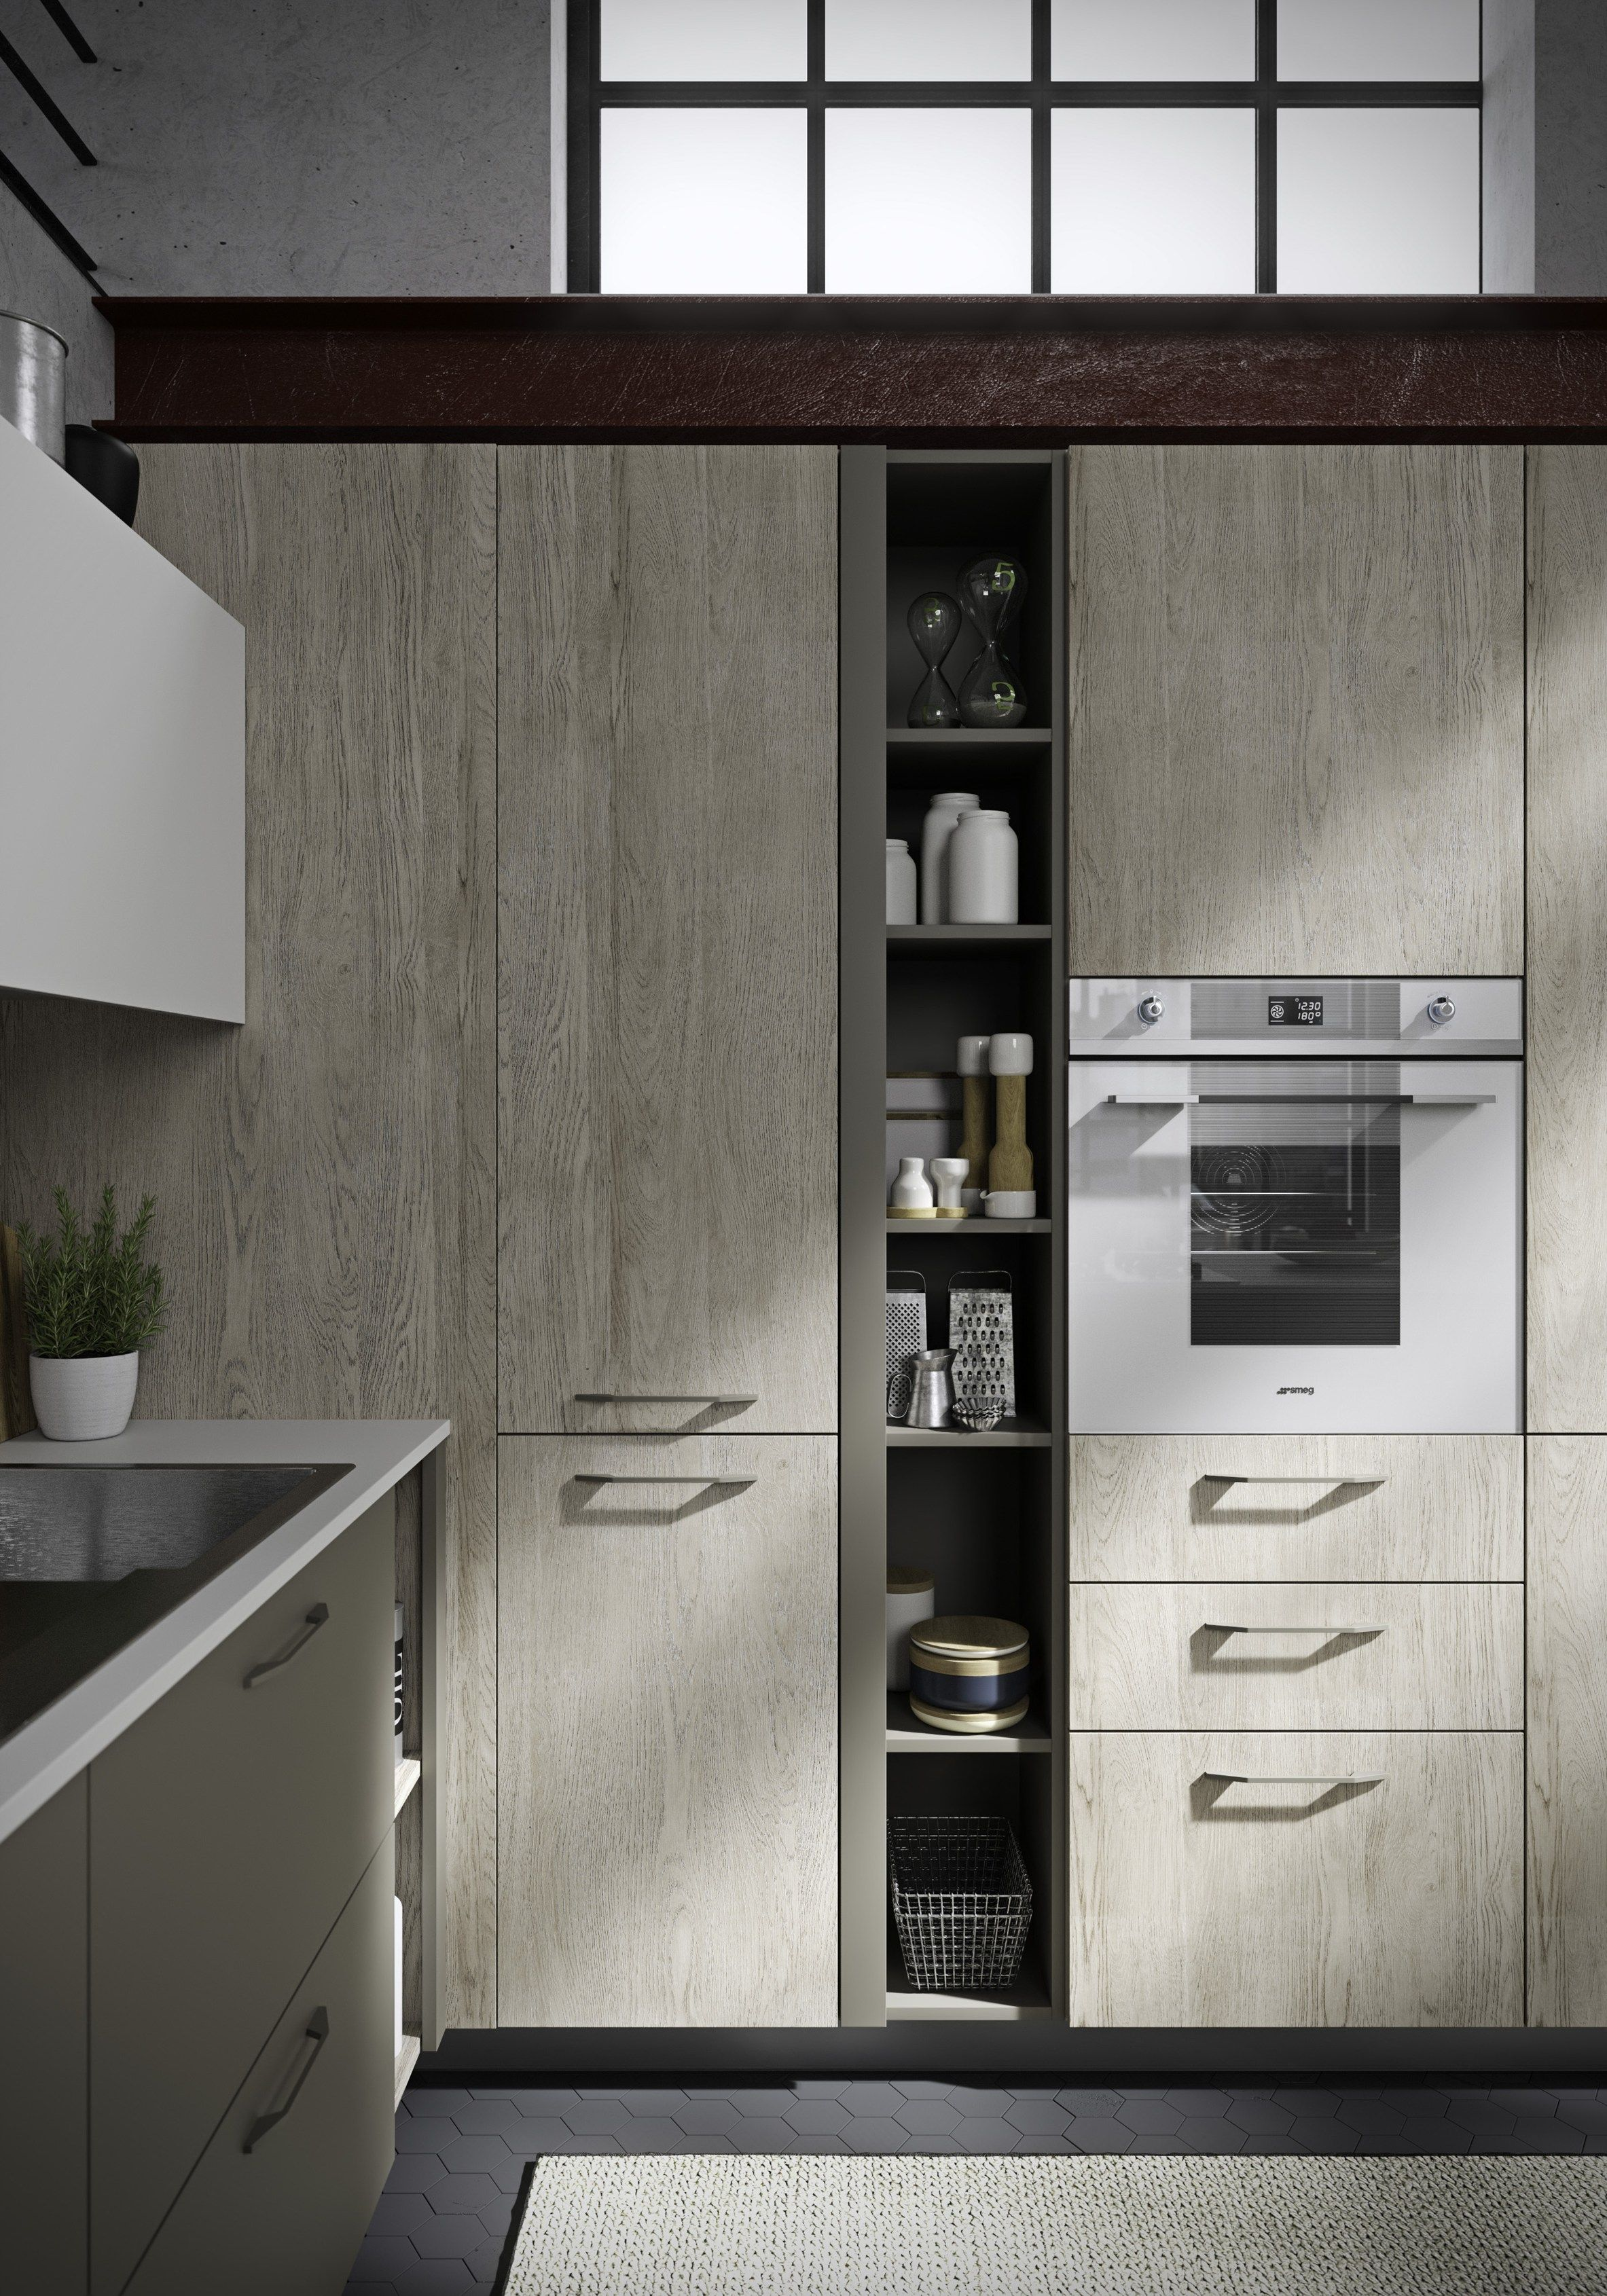 Cucina componibile con maniglie integrate FUN by Snaidero | Kitchens ...